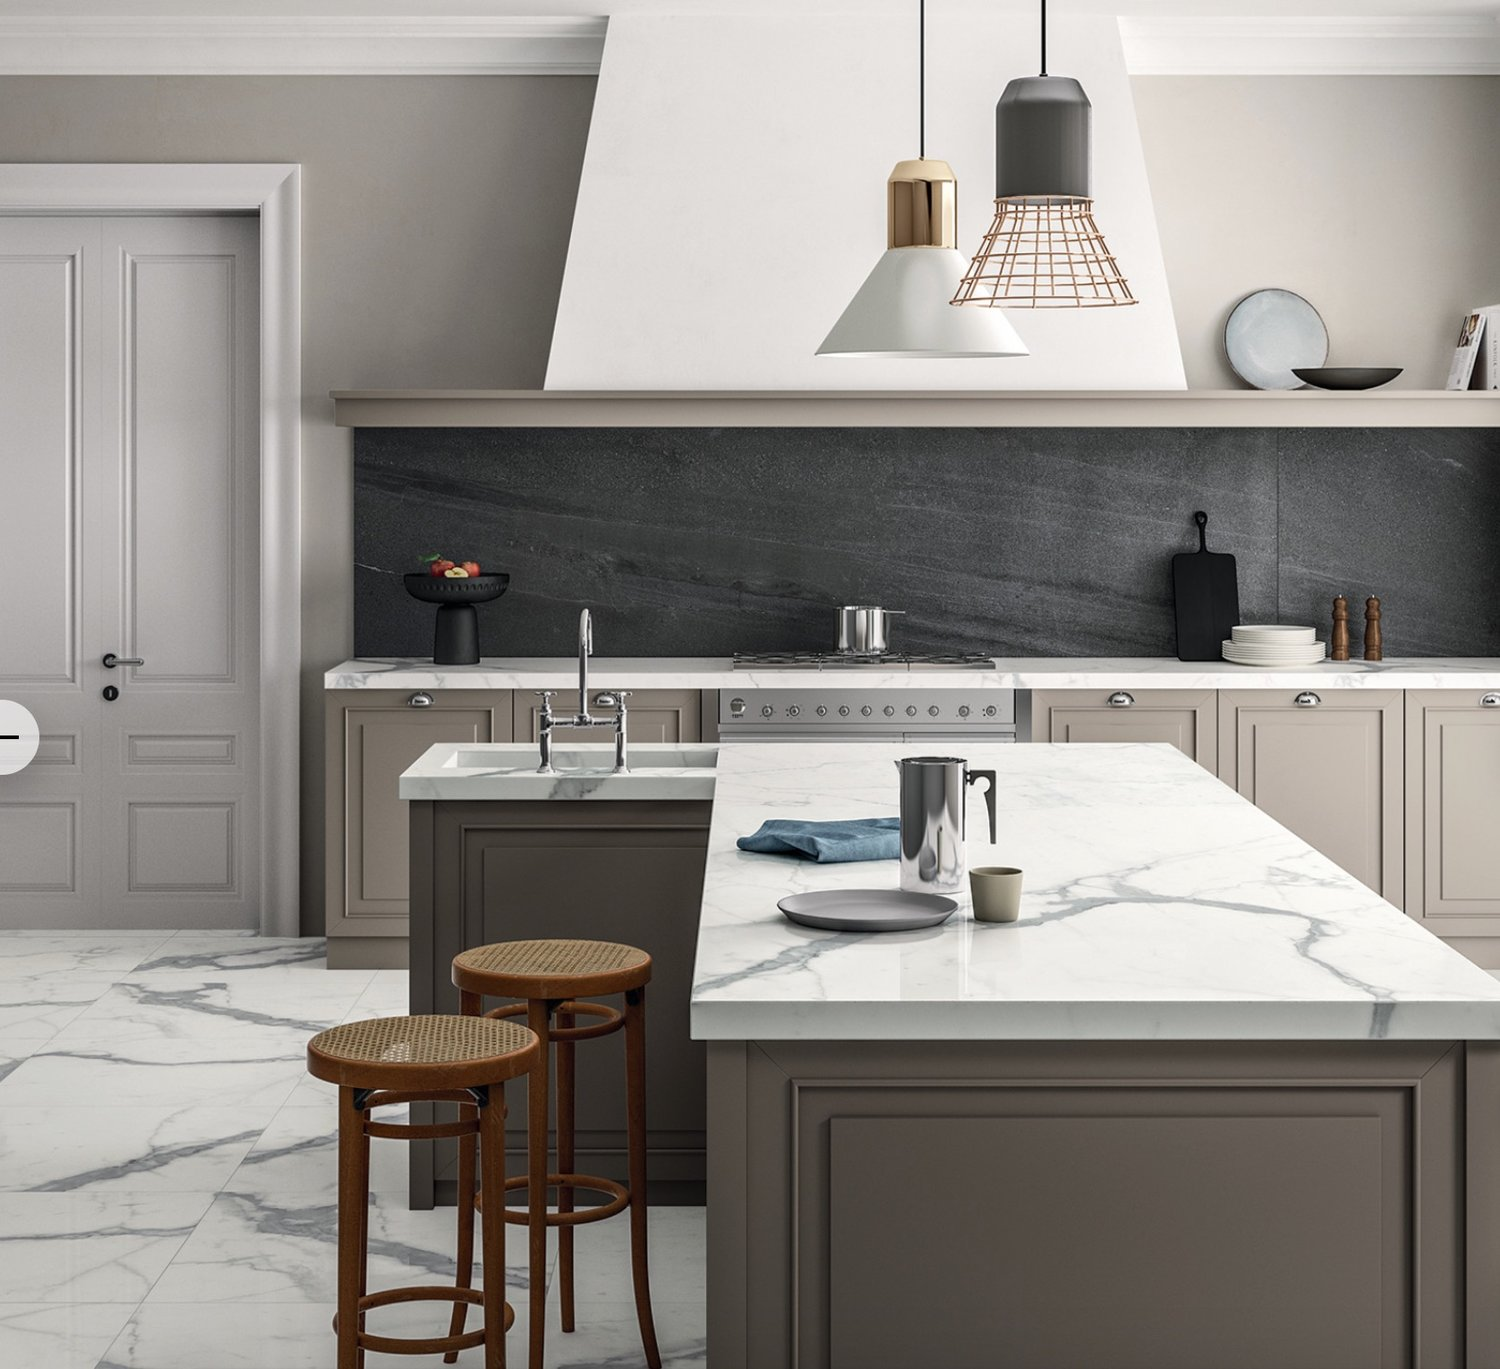 Solid Surface Backsplash Ideas | Airy Kitchens on ultra-modern kitchen bar, ultra-modern kitchen hardware, ultra-modern kitchen accessories, ultra-modern kitchen sinks, ultra-modern kitchen design, ultra-modern kitchen islands, ultra-modern kitchen faucets,